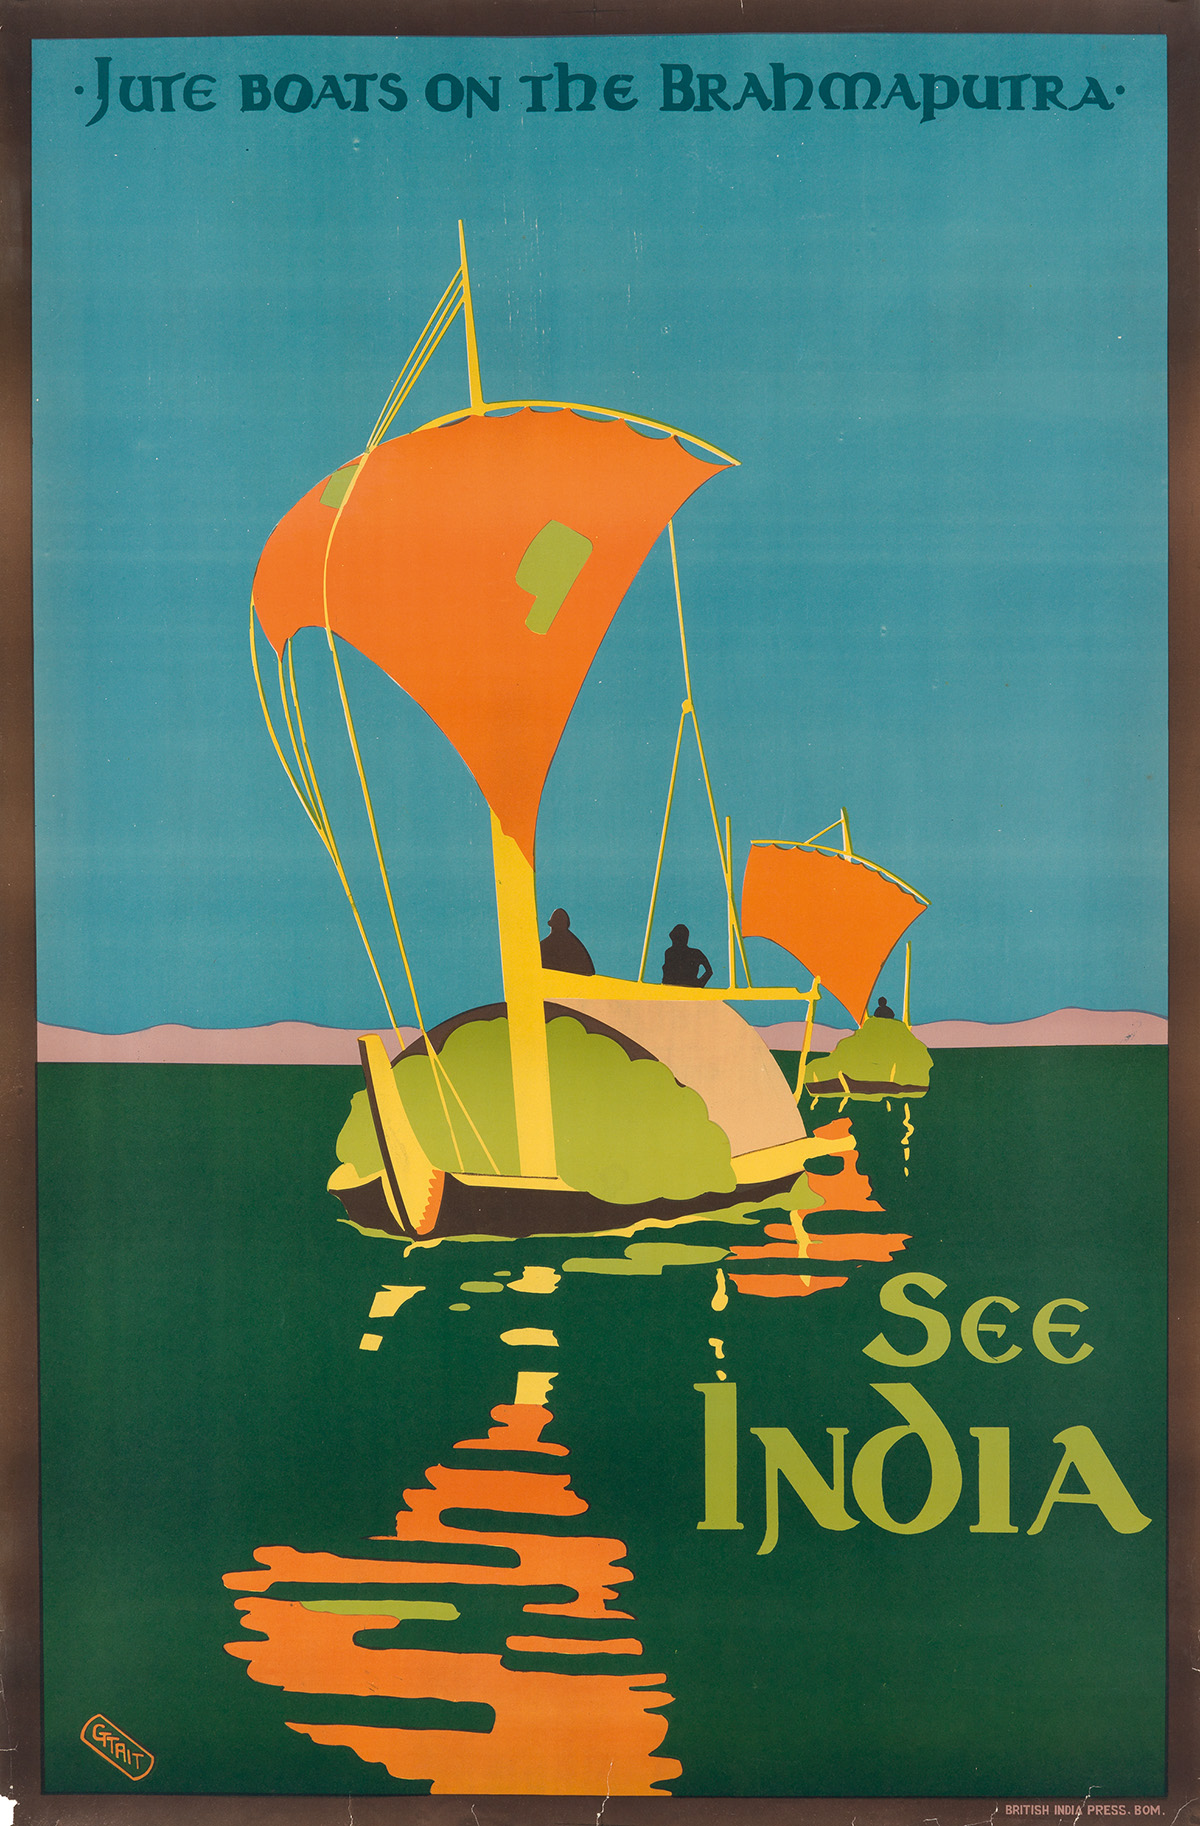 GERALD-GEORGE-WYNNE-TREVREDYN-TAIT-(1891-1954)-SEE-INDIA--JUTE-BOATS-ON-THE-BRAHMAPUTRA-Circa-1930s-40x24-inches-102x63-cm-Britis